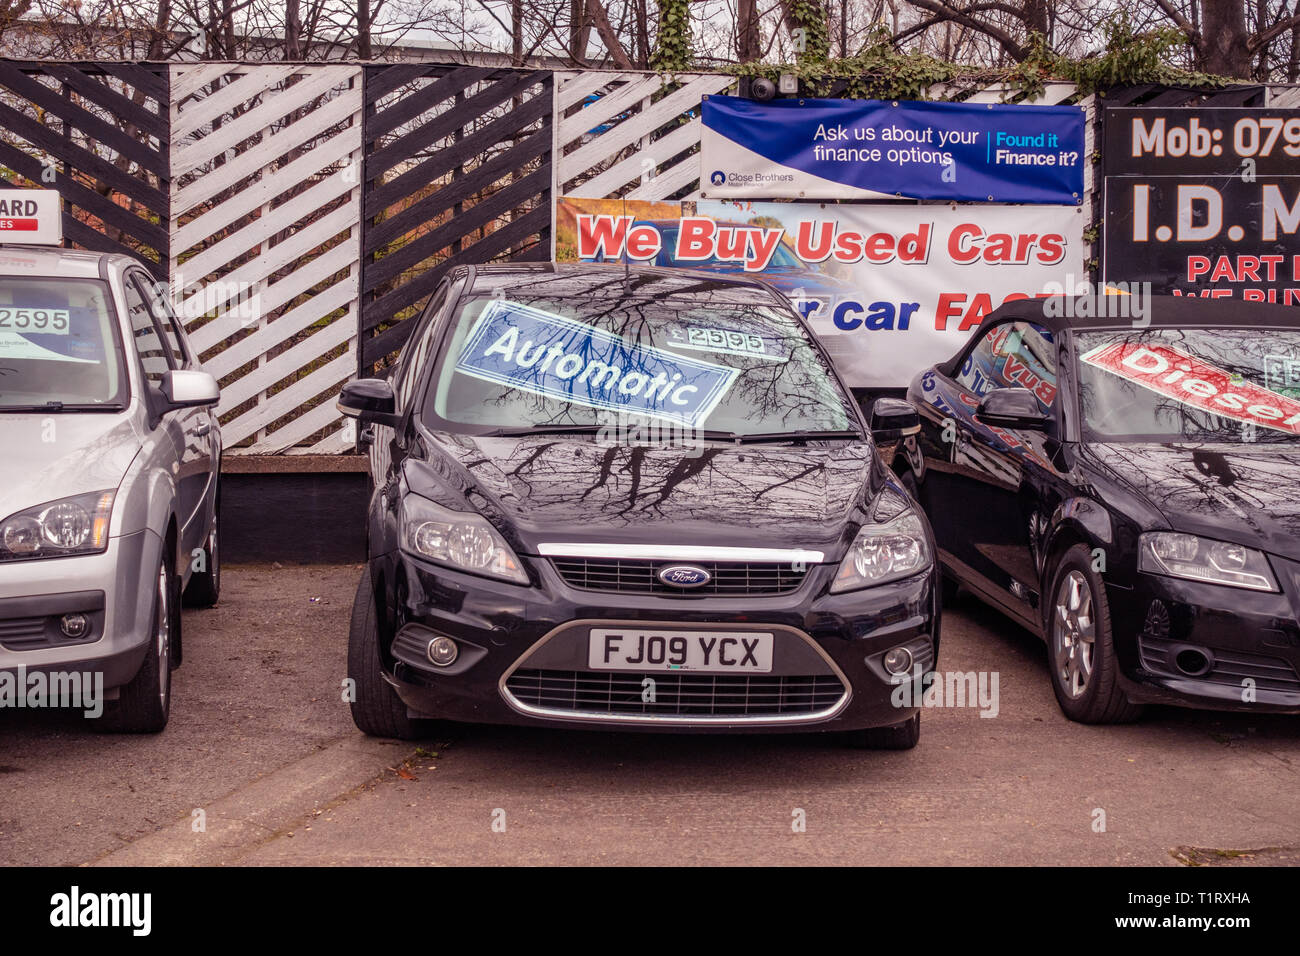 General view from the street of a Used Car Sale forecourt on a Second Hand Car sales pitch at the side of the road - Stock Image